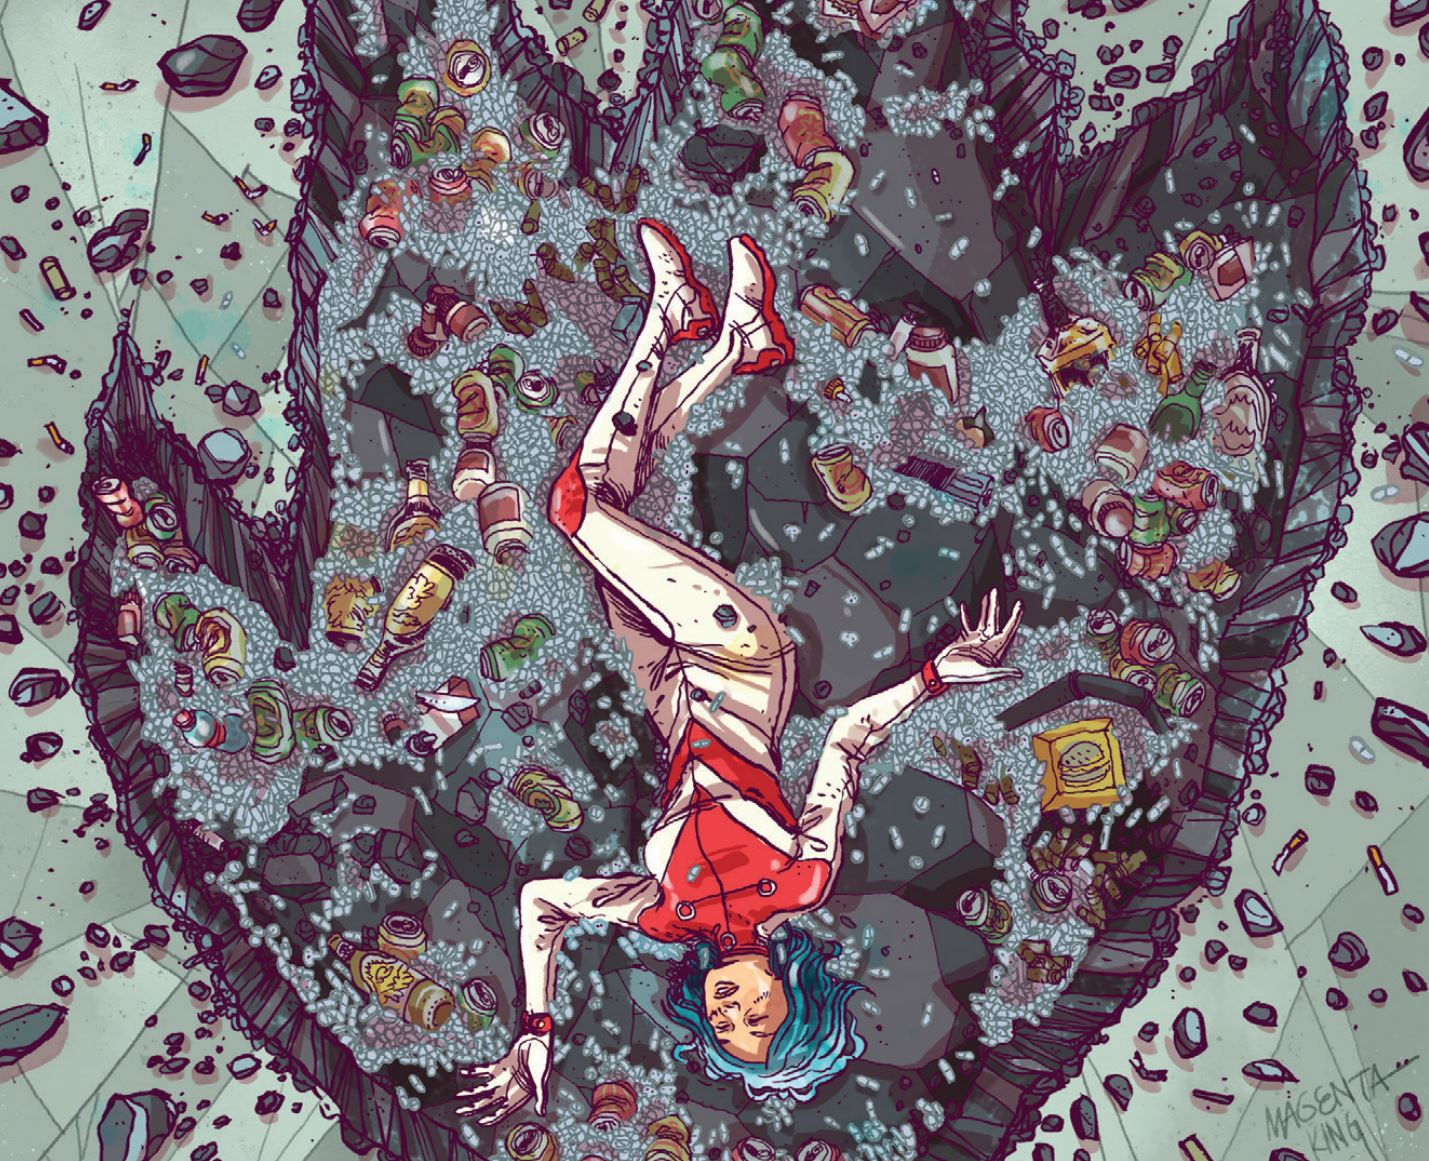 'Jenny Zero' #1 proves partying and monsters are a perfect match